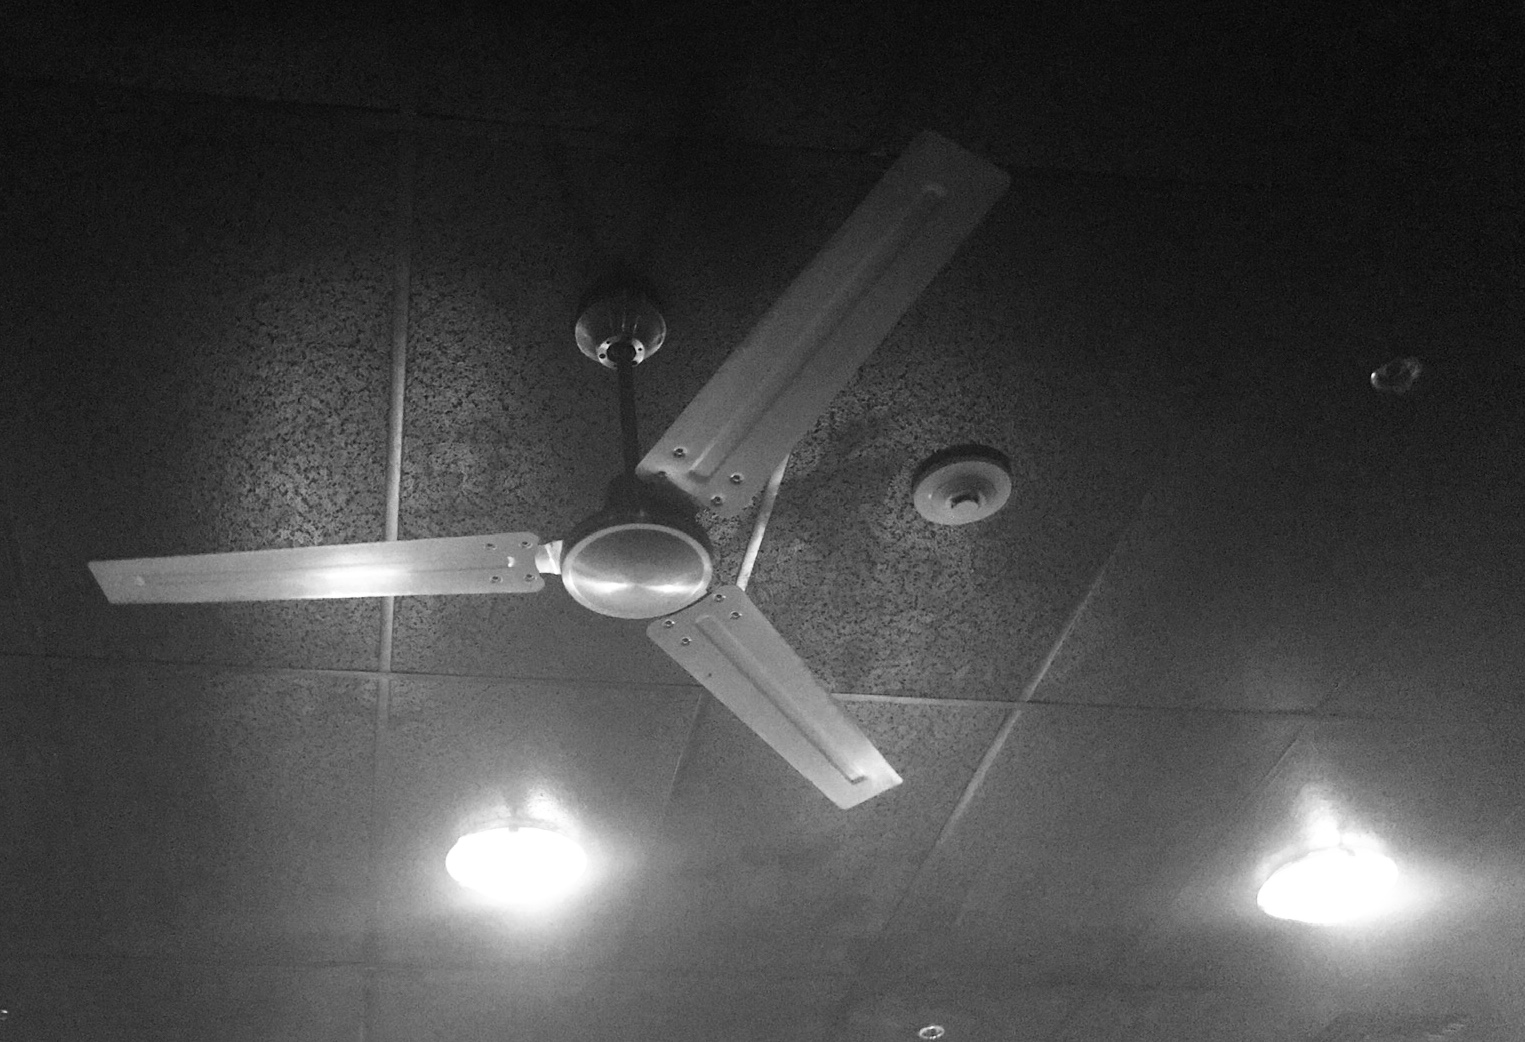 I Disobeyed The Teacher S Guidance To Close My Eyes And Saw Overhead One Of Studio Fans Turning Very Slowly